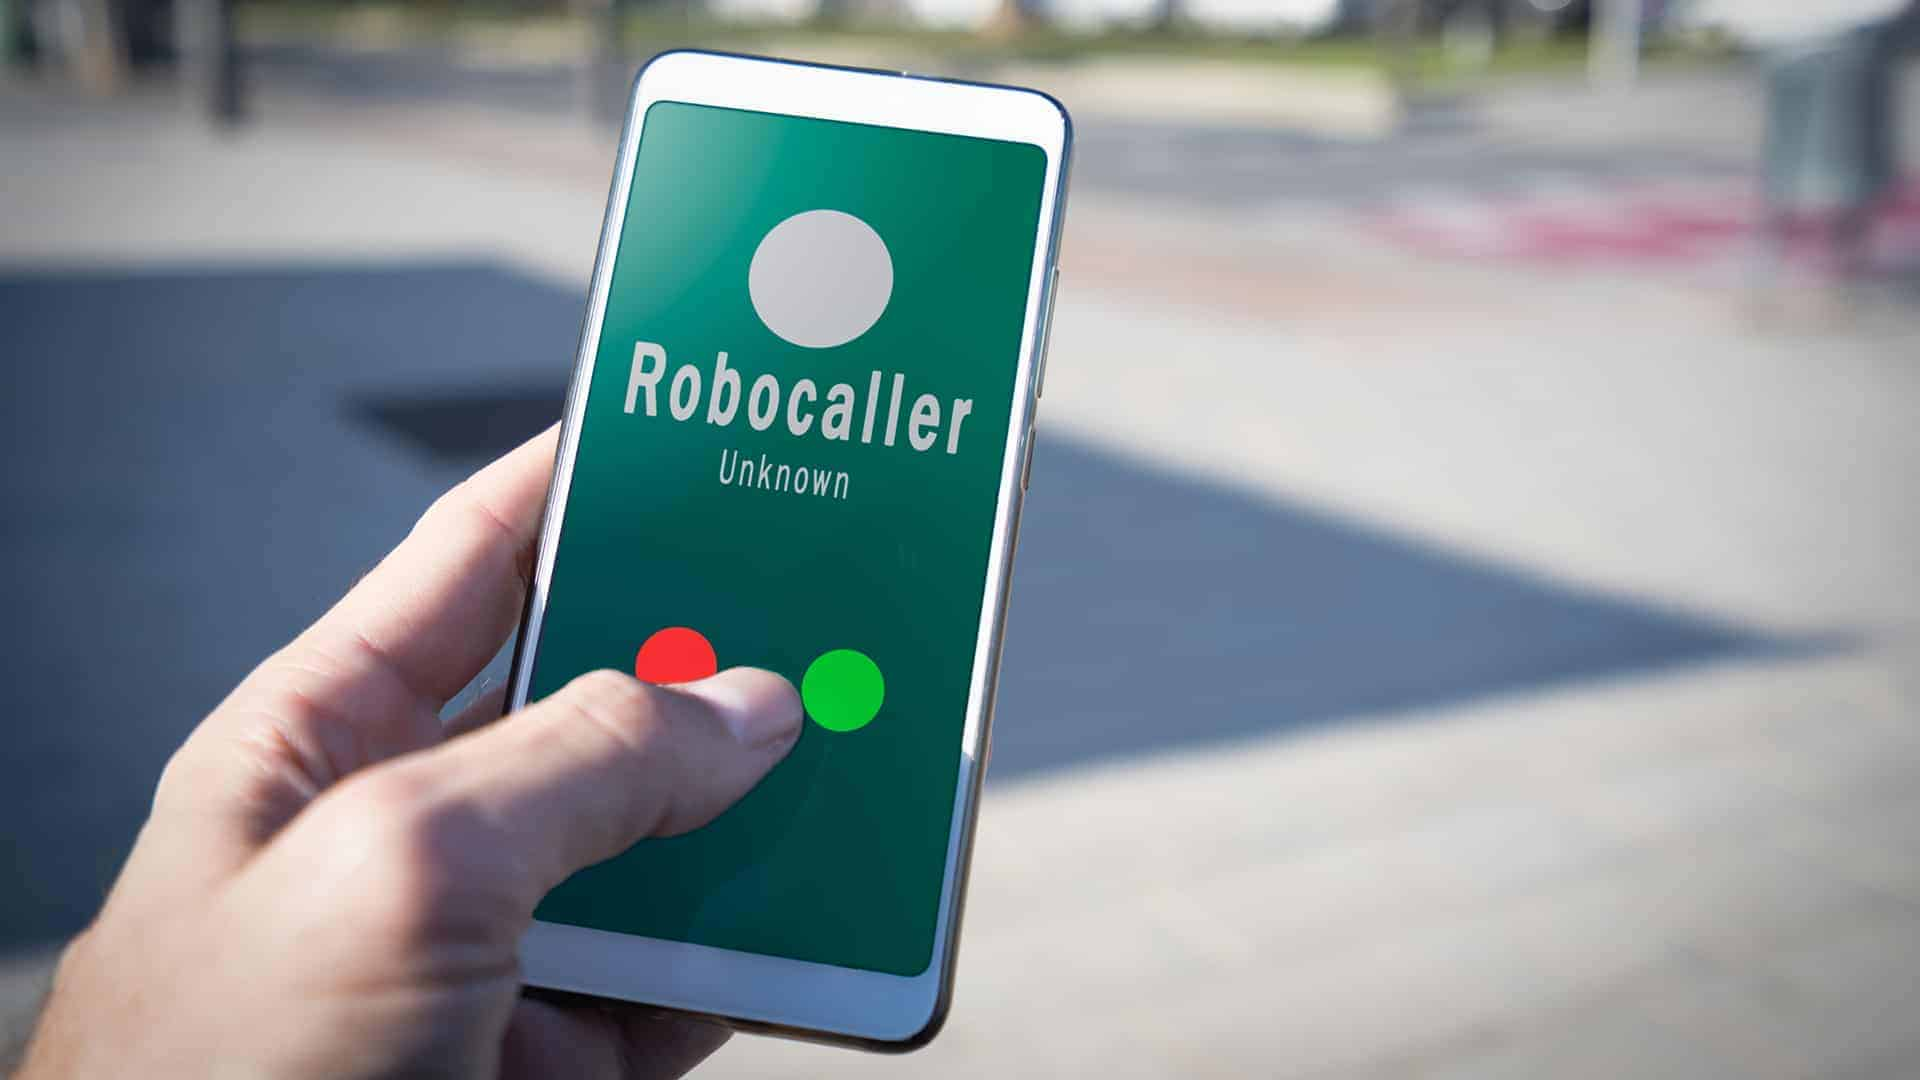 Smartphone showing a call from a robocaller on screen